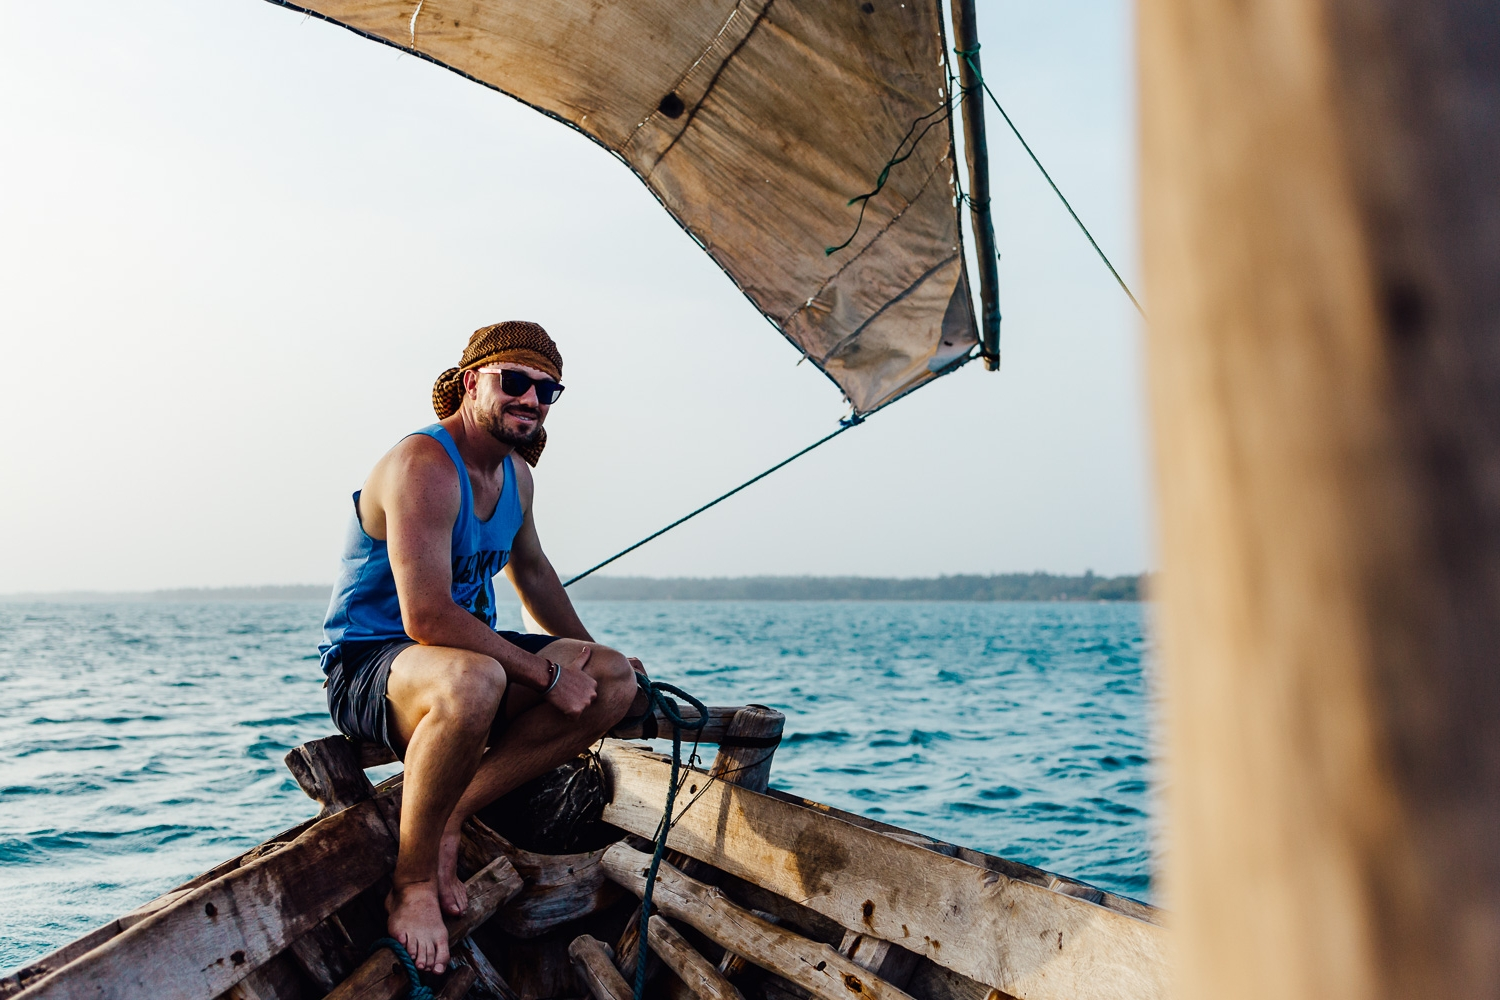 Sailboat-Sailing-Boat-Water-Island-Pirate-Friend-Travel-Africa-Durazo-Photography